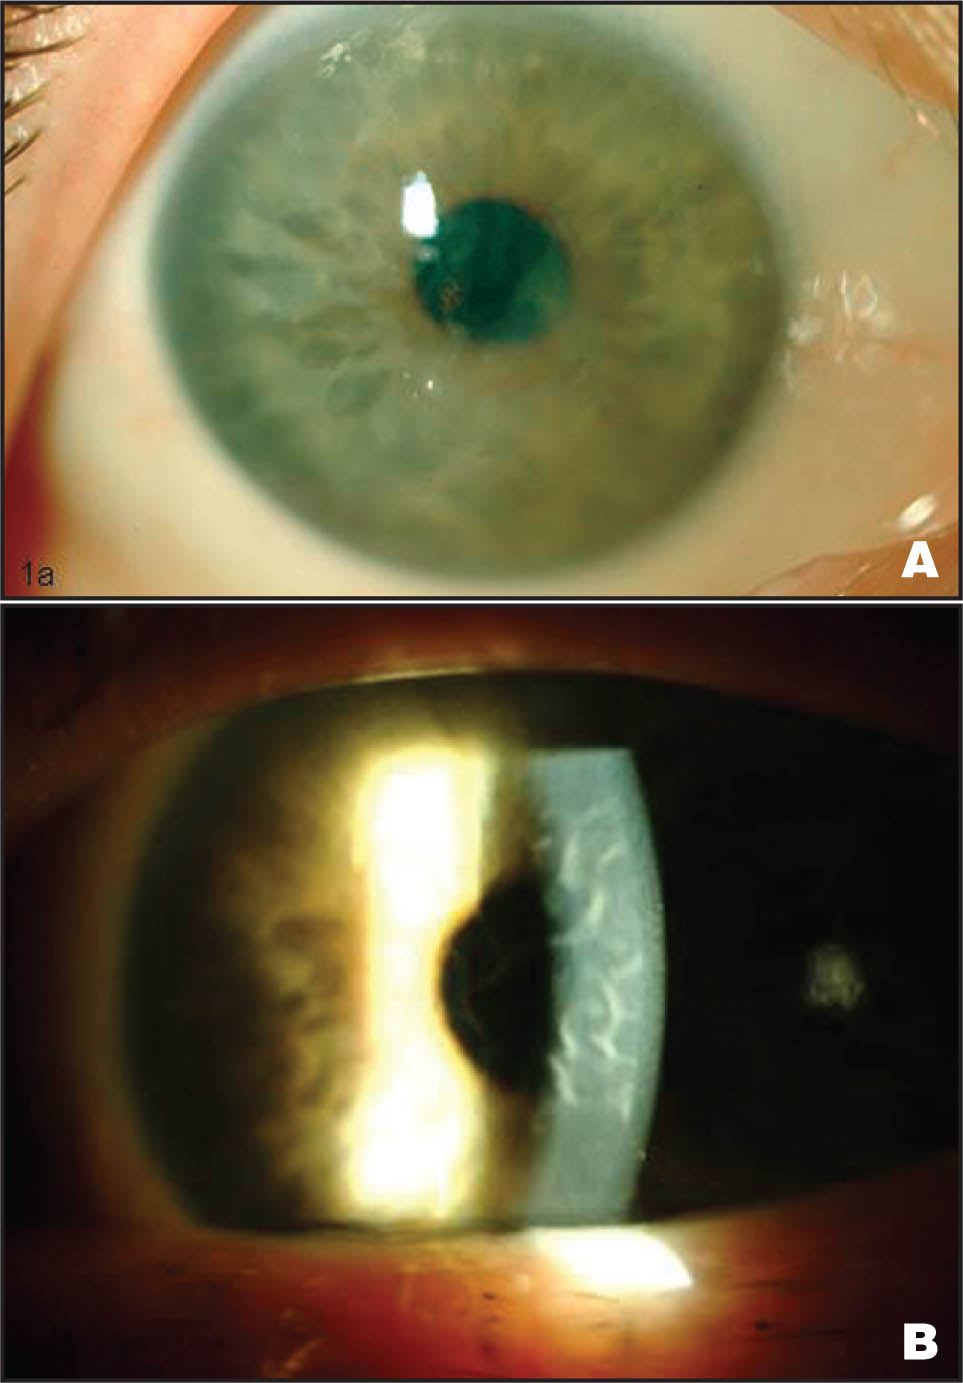 (A) Slit-Lamp Photograph of the Patient's Right Eye on Presentation, Demonstrating Diffuse Stromal and Bullous Epithelial Corneal Edema Secondary to Amantadine Use. (B) A Slit-Beam Demonstrates Marked Descemet's Membrane Folds. No Guttae Were Visible. Similar Findings Were Present in the Left Eye.